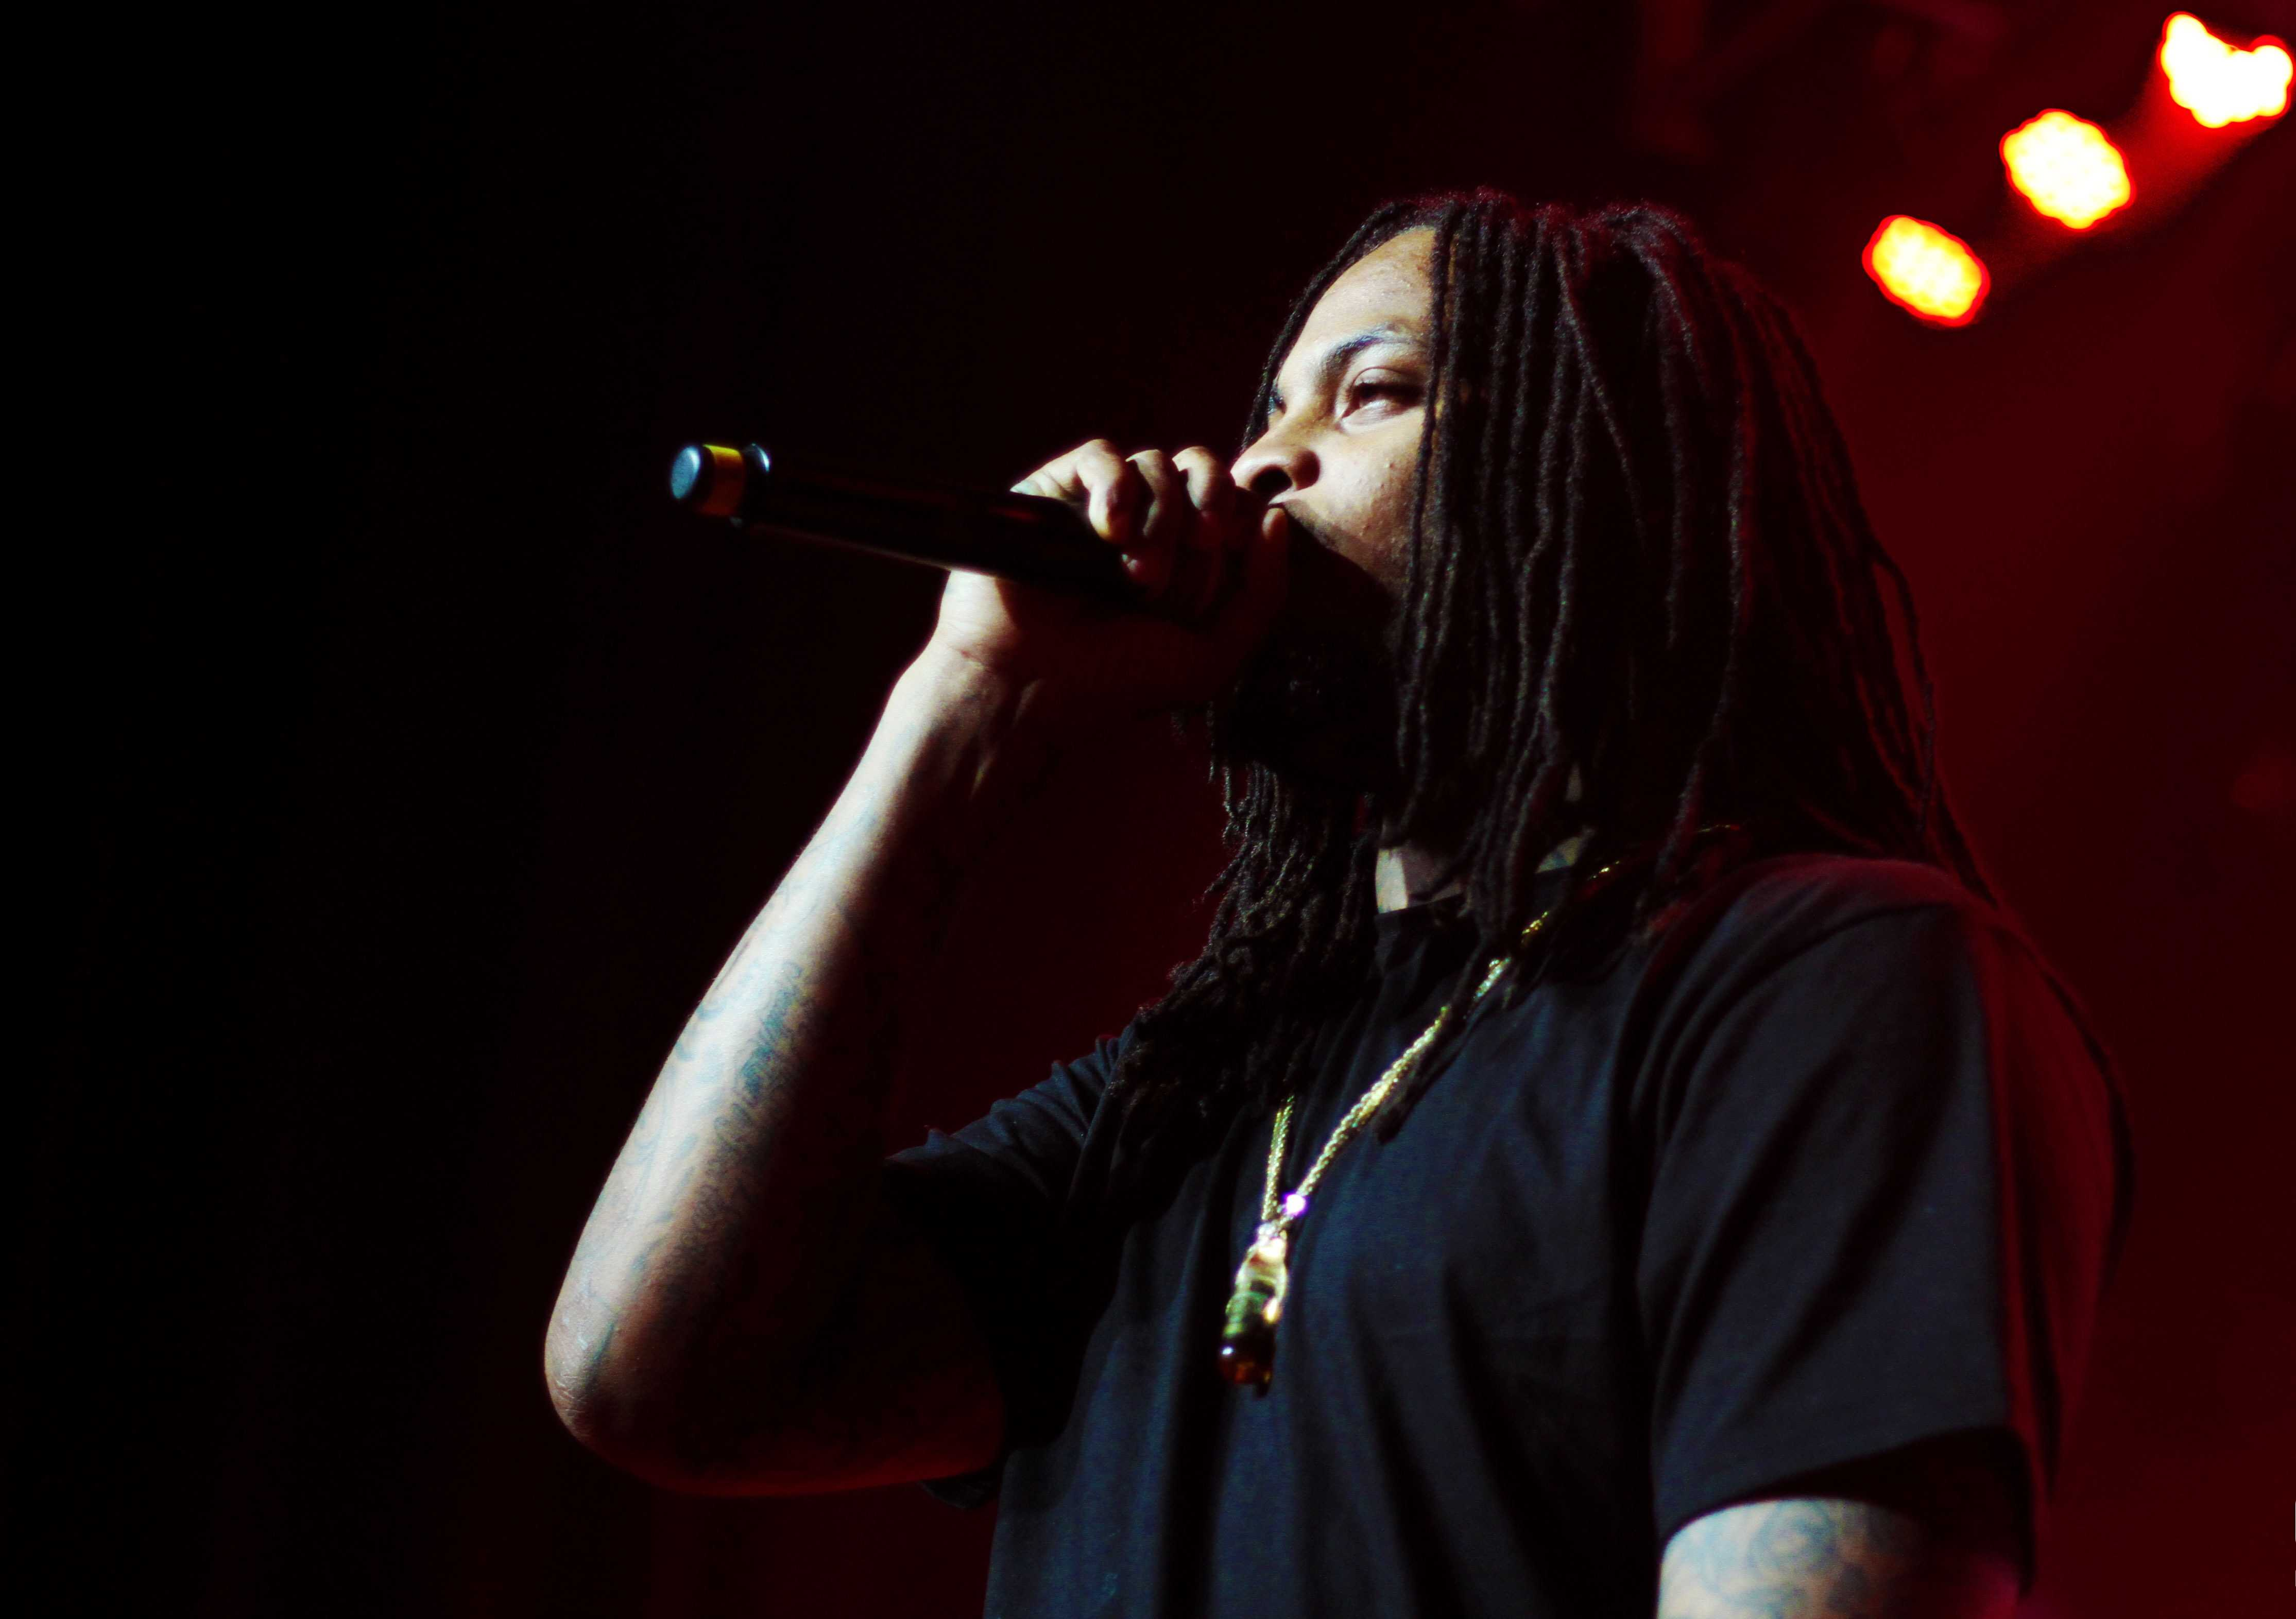 ATΩ, Waka Flocka Flame partner for benefit concert at Pure Nightclub